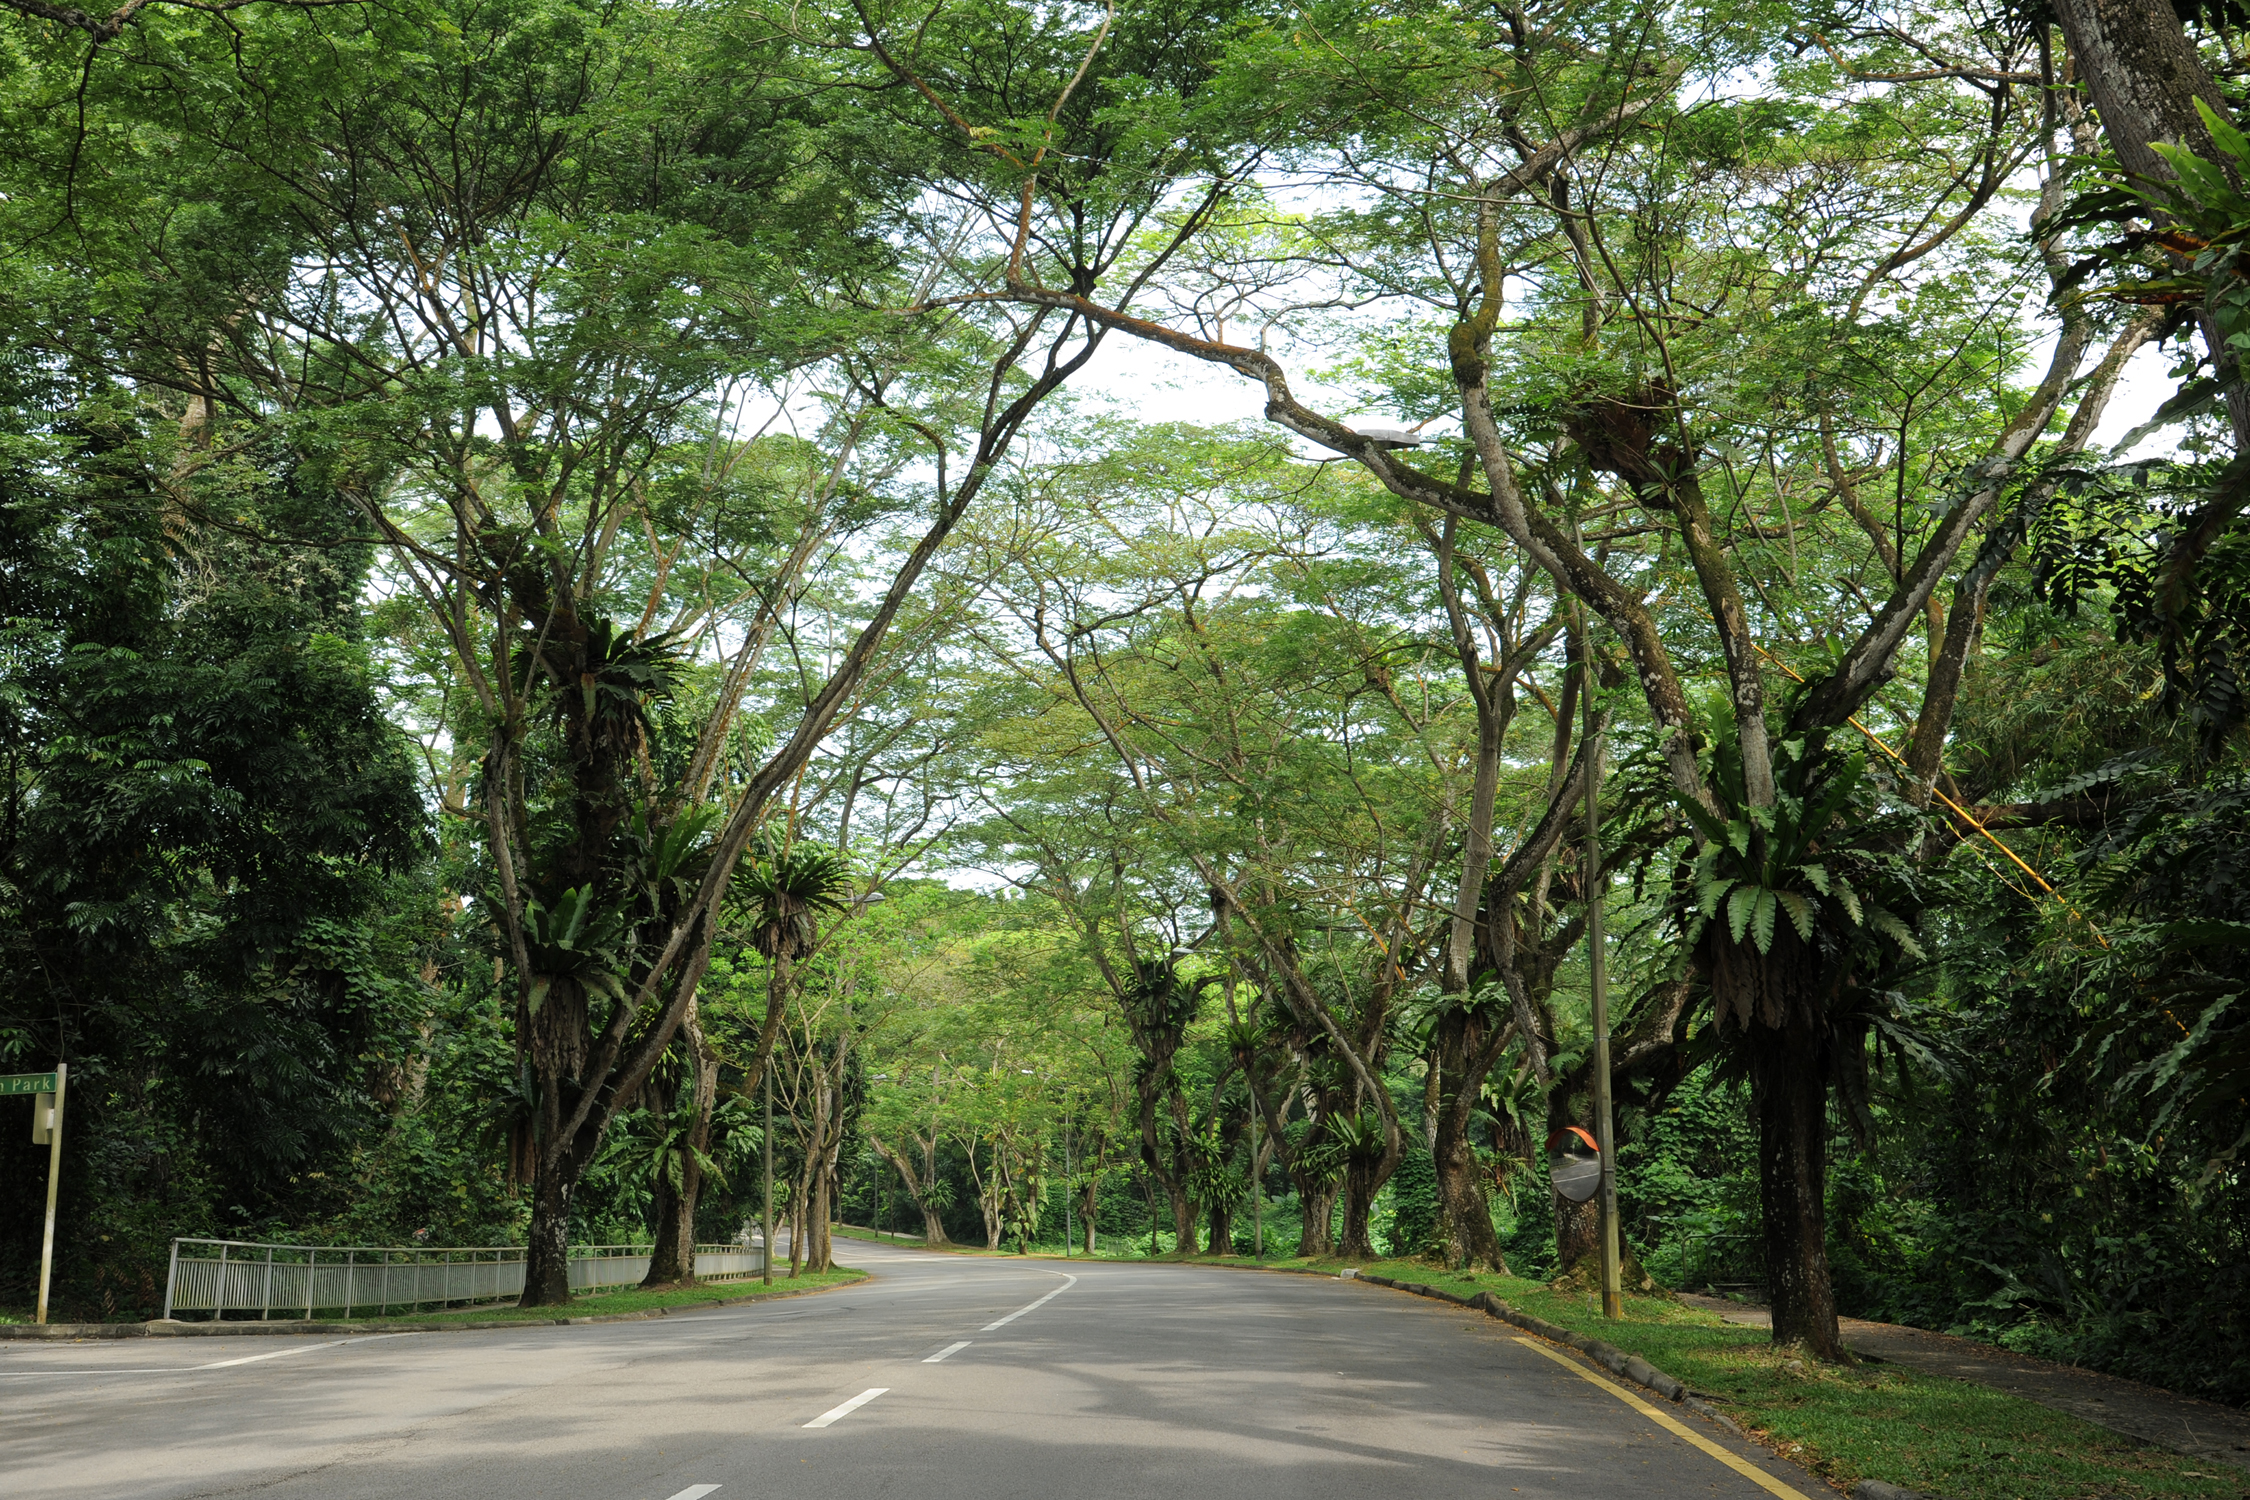 Arcadia Road - Heritage Roads - Gardens, Parks & Nature - National Parks Board (NParks)